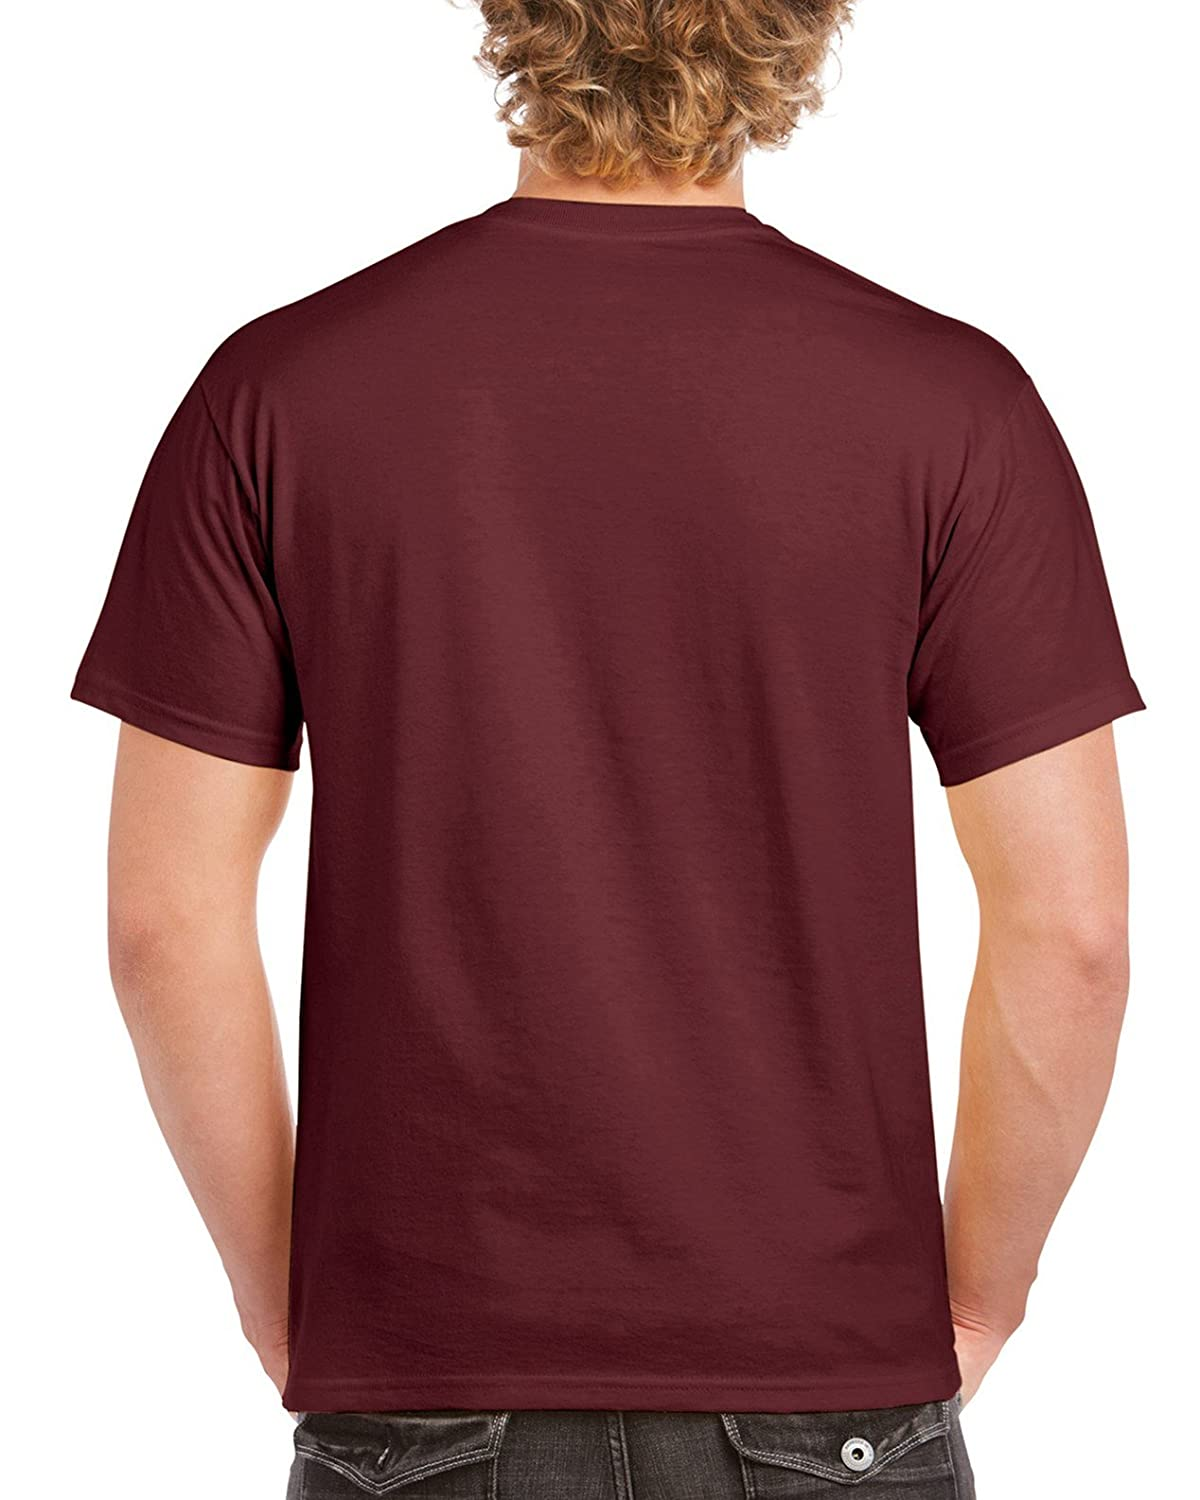 013aa83d Amazon.com: Gildan Men's Ultra Cotton Tee Extended Sizes: Clothing